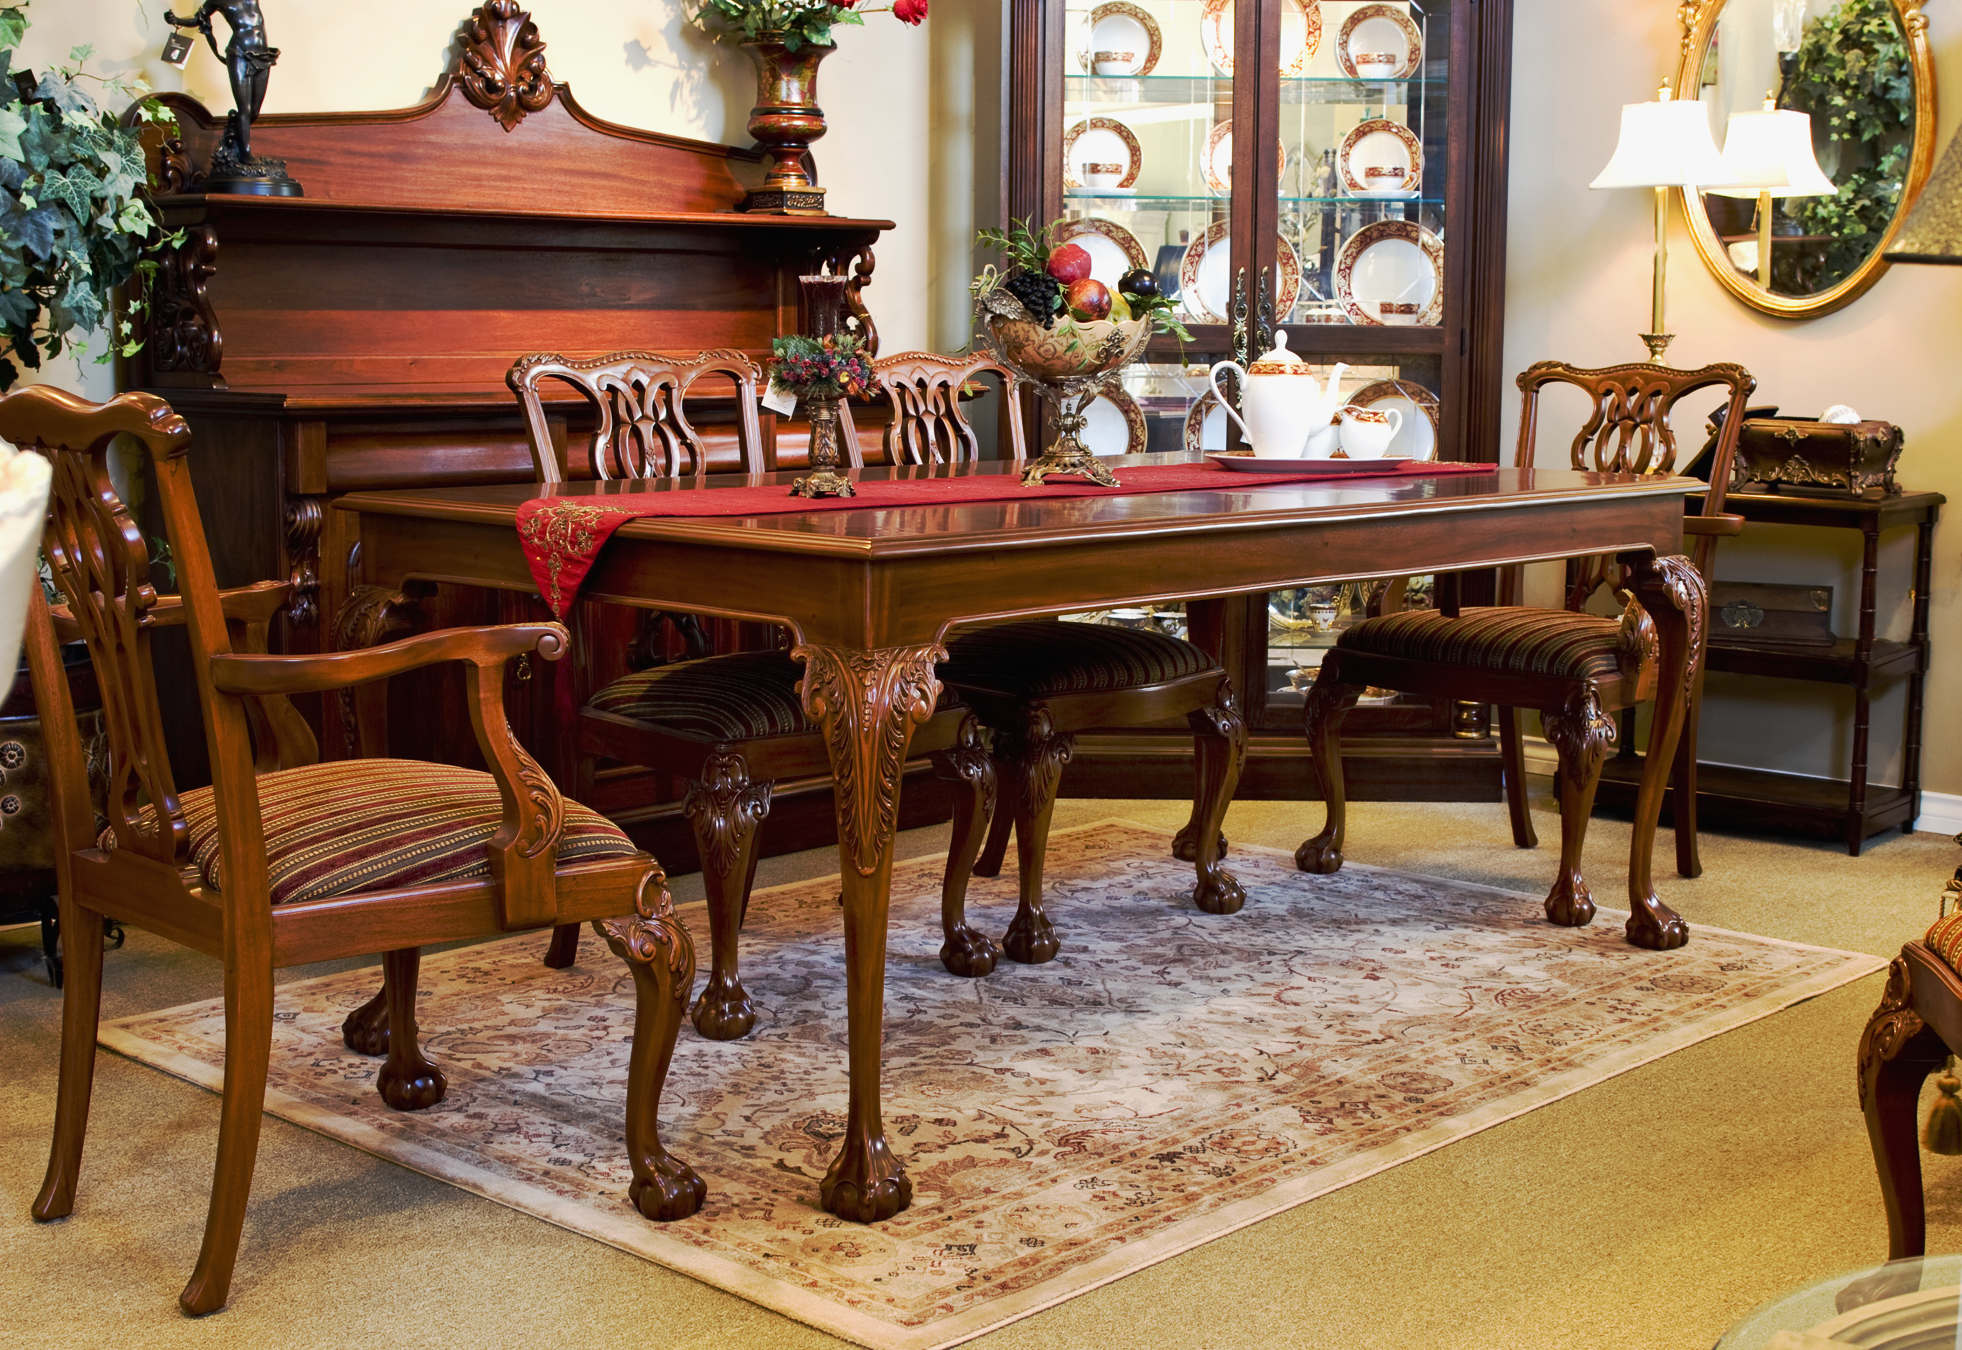 TA 2218 CHIPPENDALE DINING TABLE NO LEAF p.jpg